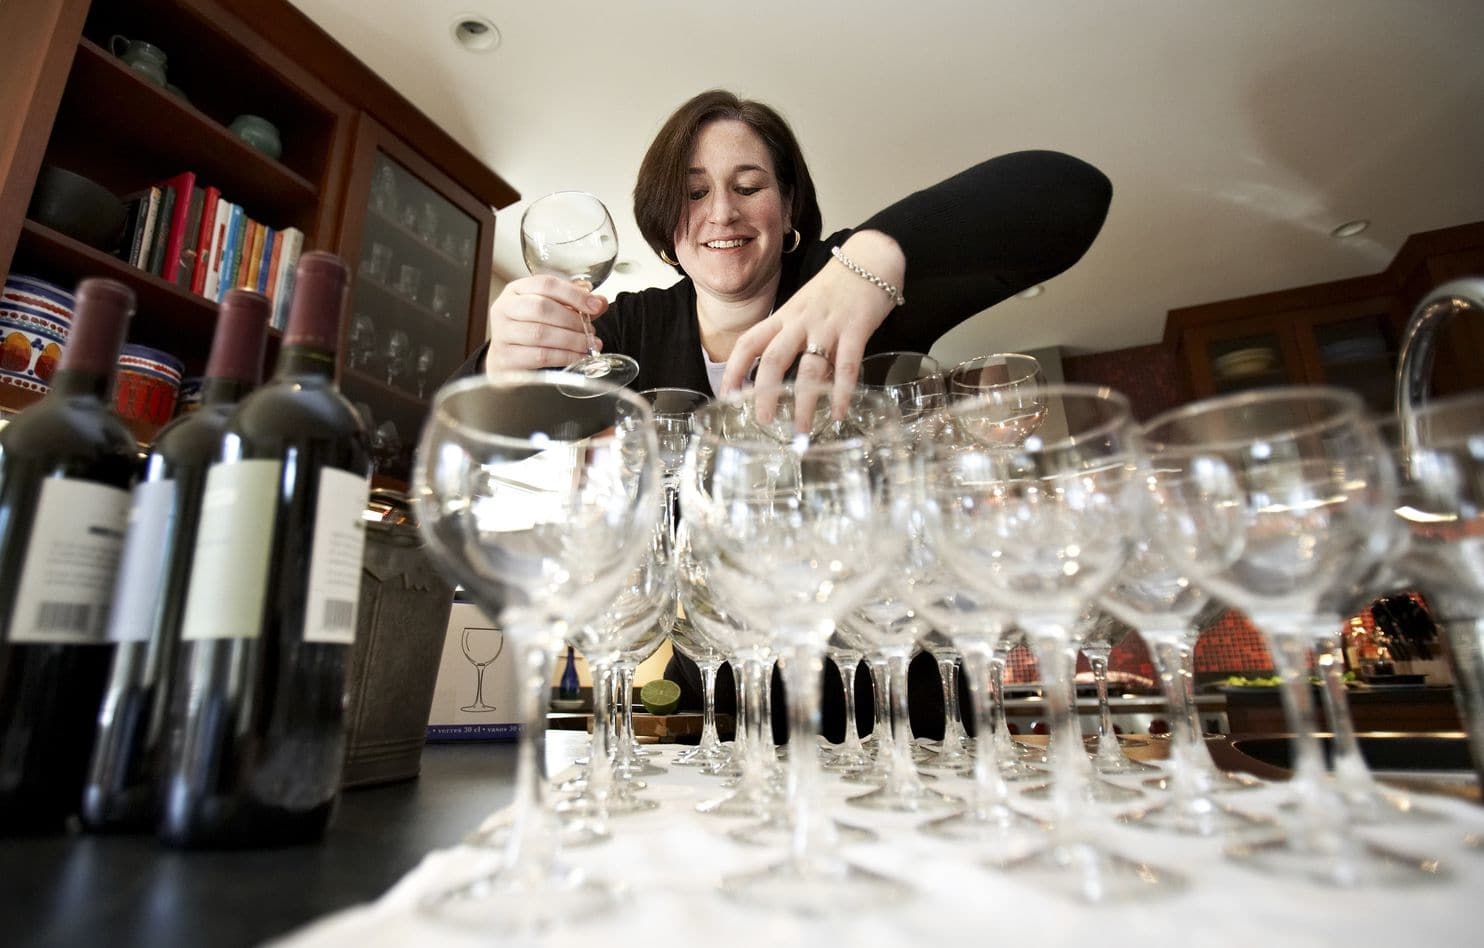 How To Host A Wine Party For Serious Tasting Or Just For Fun photo